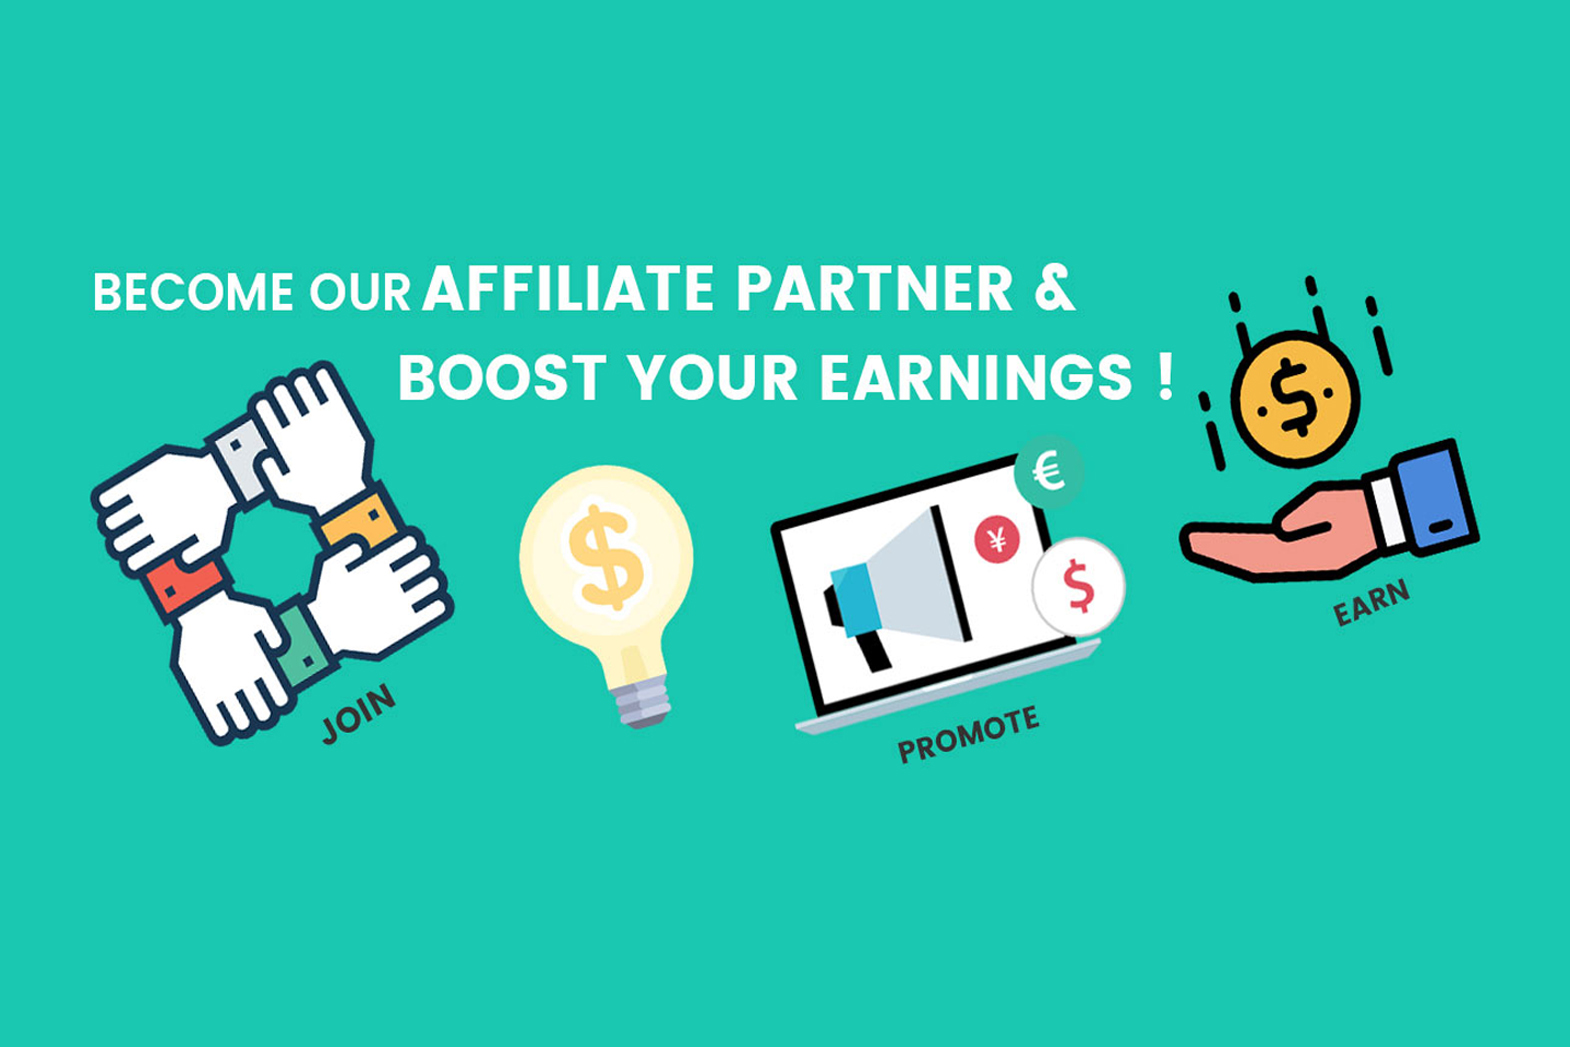 Join our affiliates program